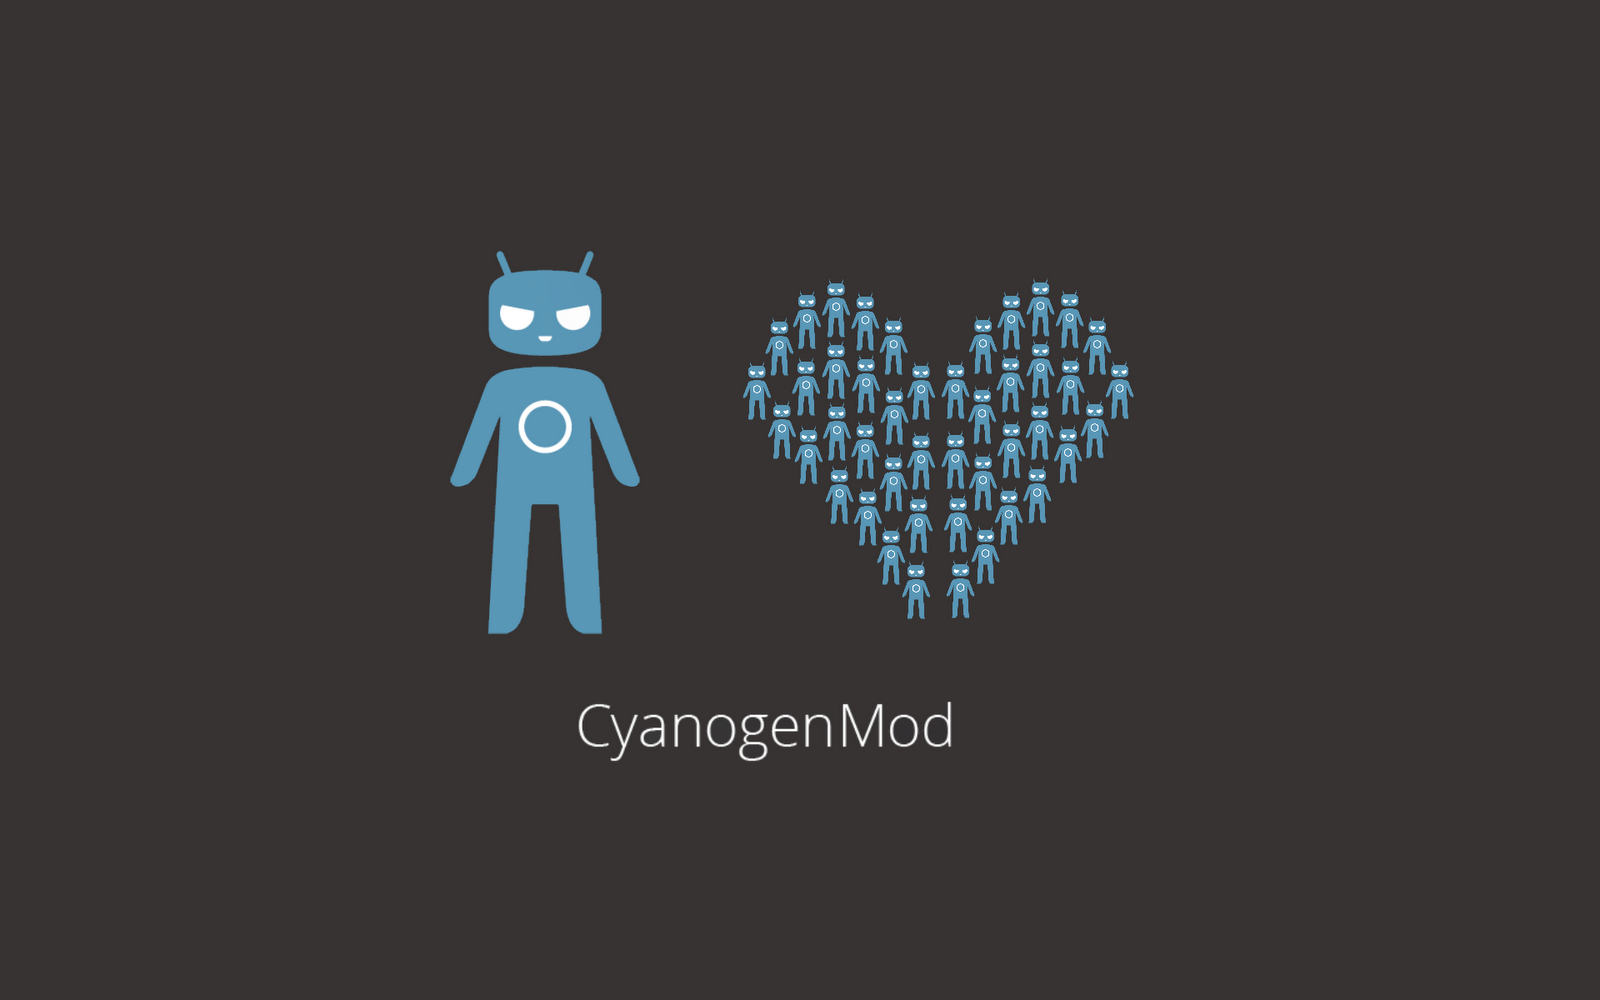 CyanogenMod 12.1 con Android 5.1.1 publicado de manera estable 1